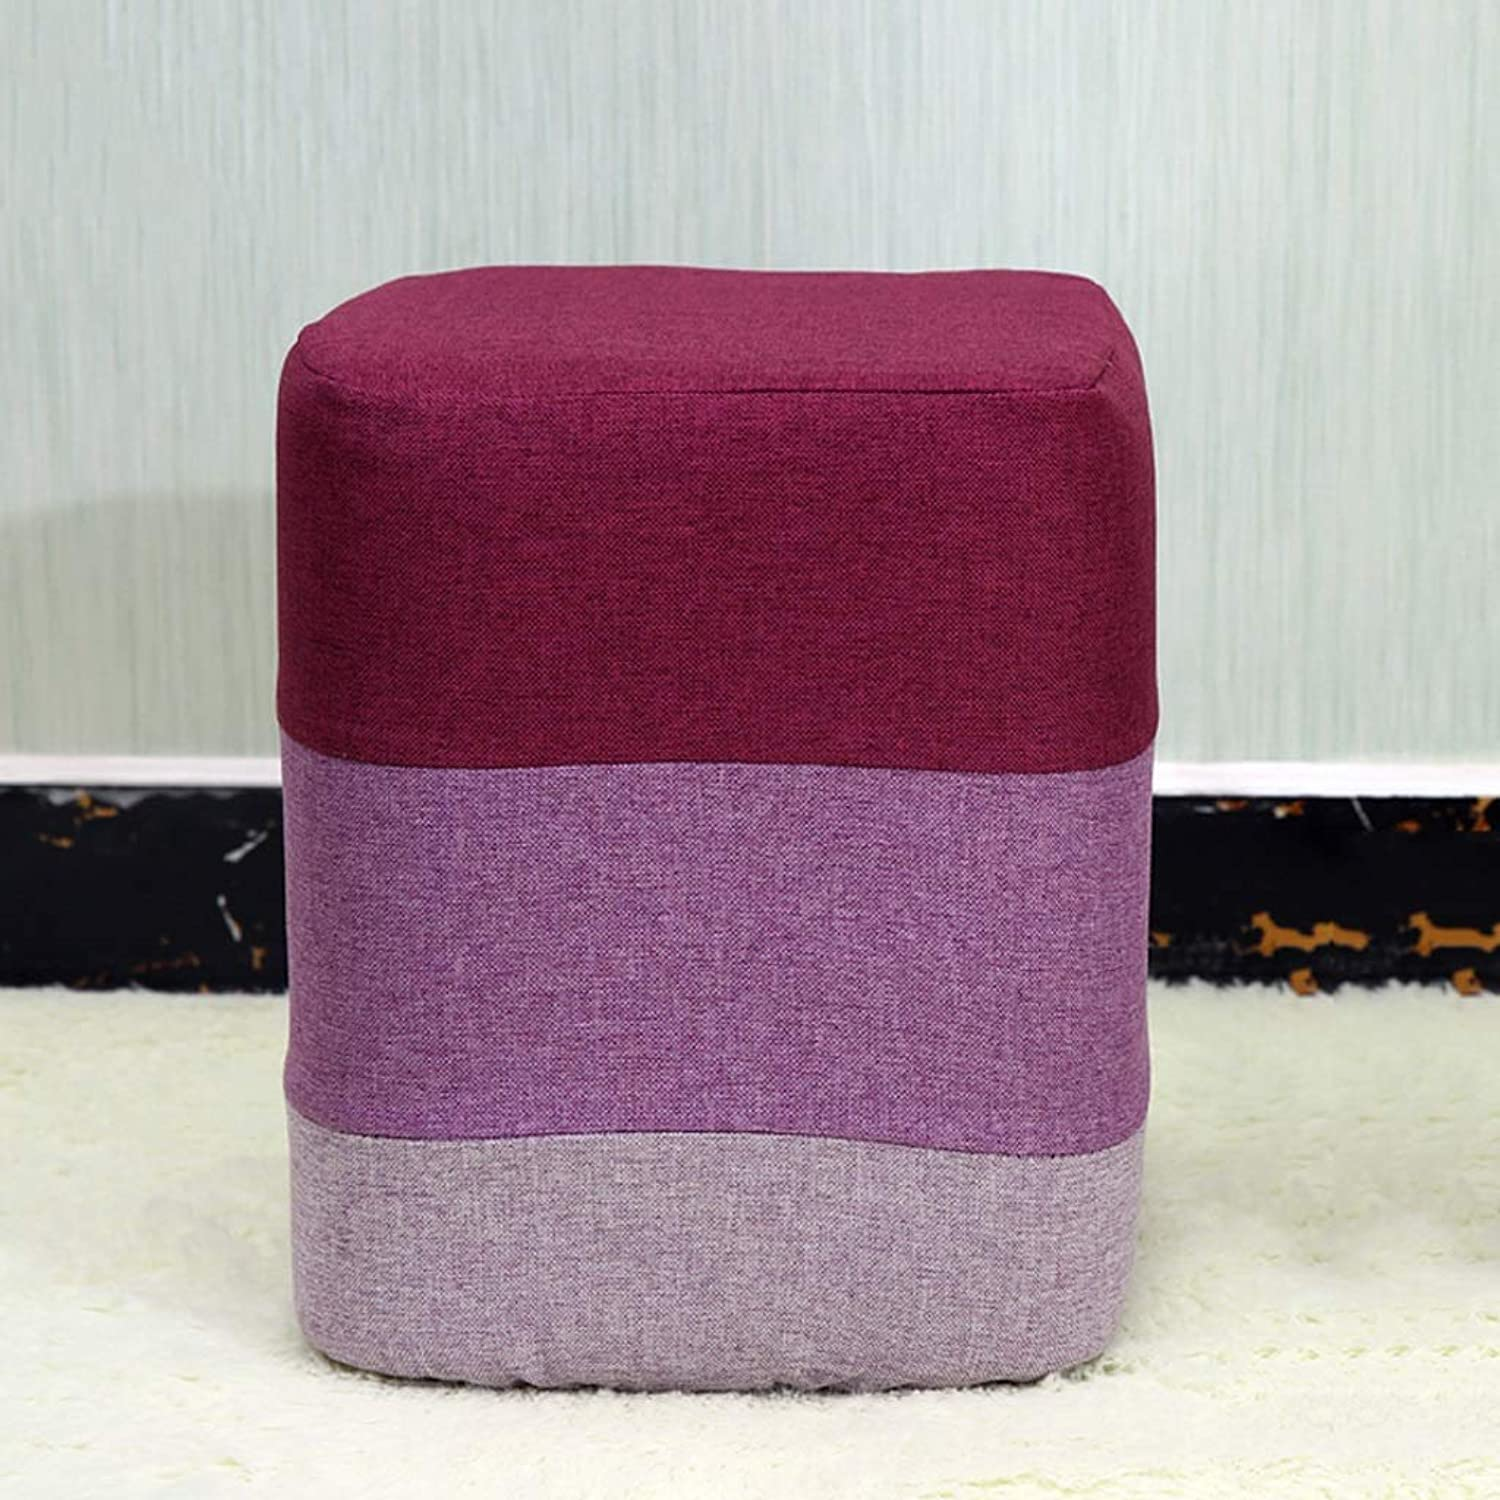 CQ Square Stool color Stool Fabric Household Adult Bench Small Chair Stool shoes Bench shoes Bench Sofa Bench